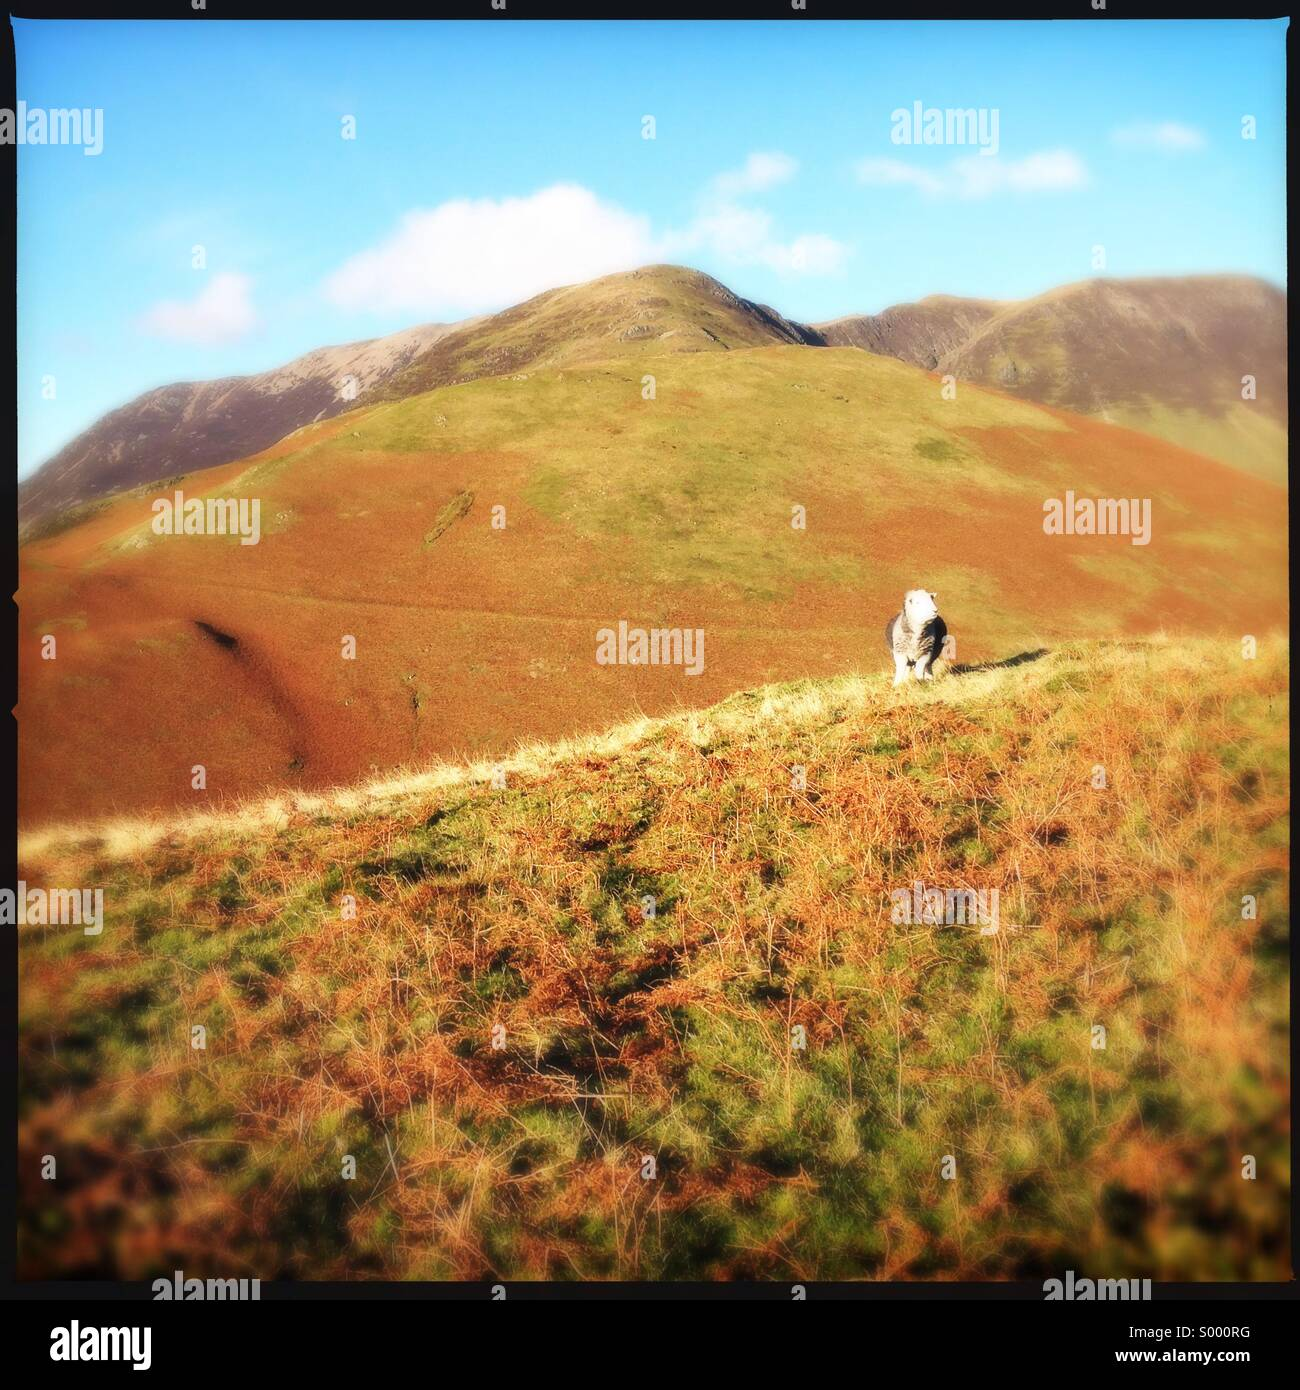 Sheep on hilltop in Buttermere, Cumbria - Stock Image